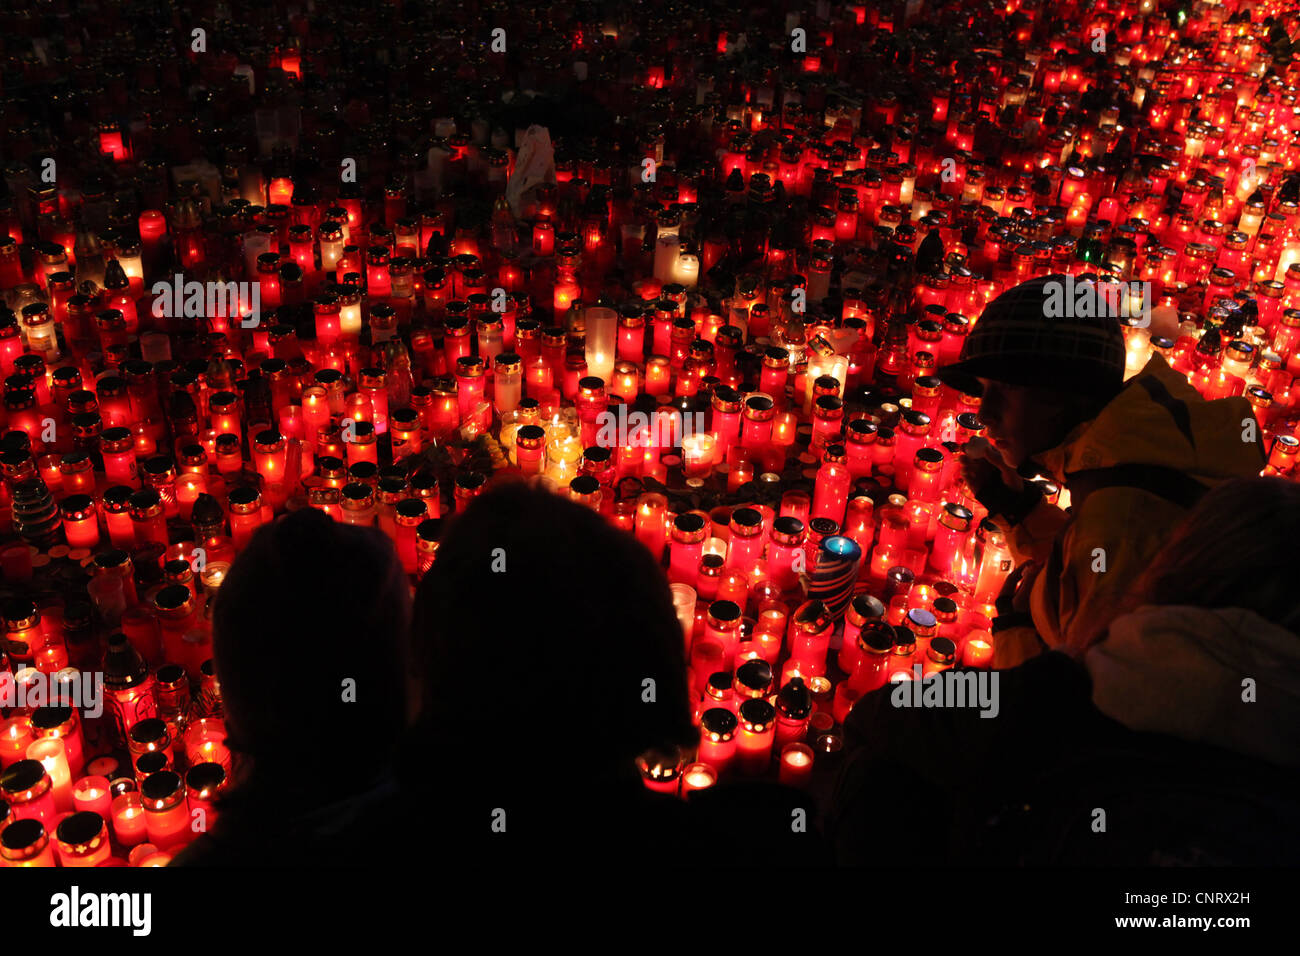 People mourning late Czech president Vaclav Havel in Wenceslas square in December 22, 2011, in Prague, Czech Republic. Stock Photo